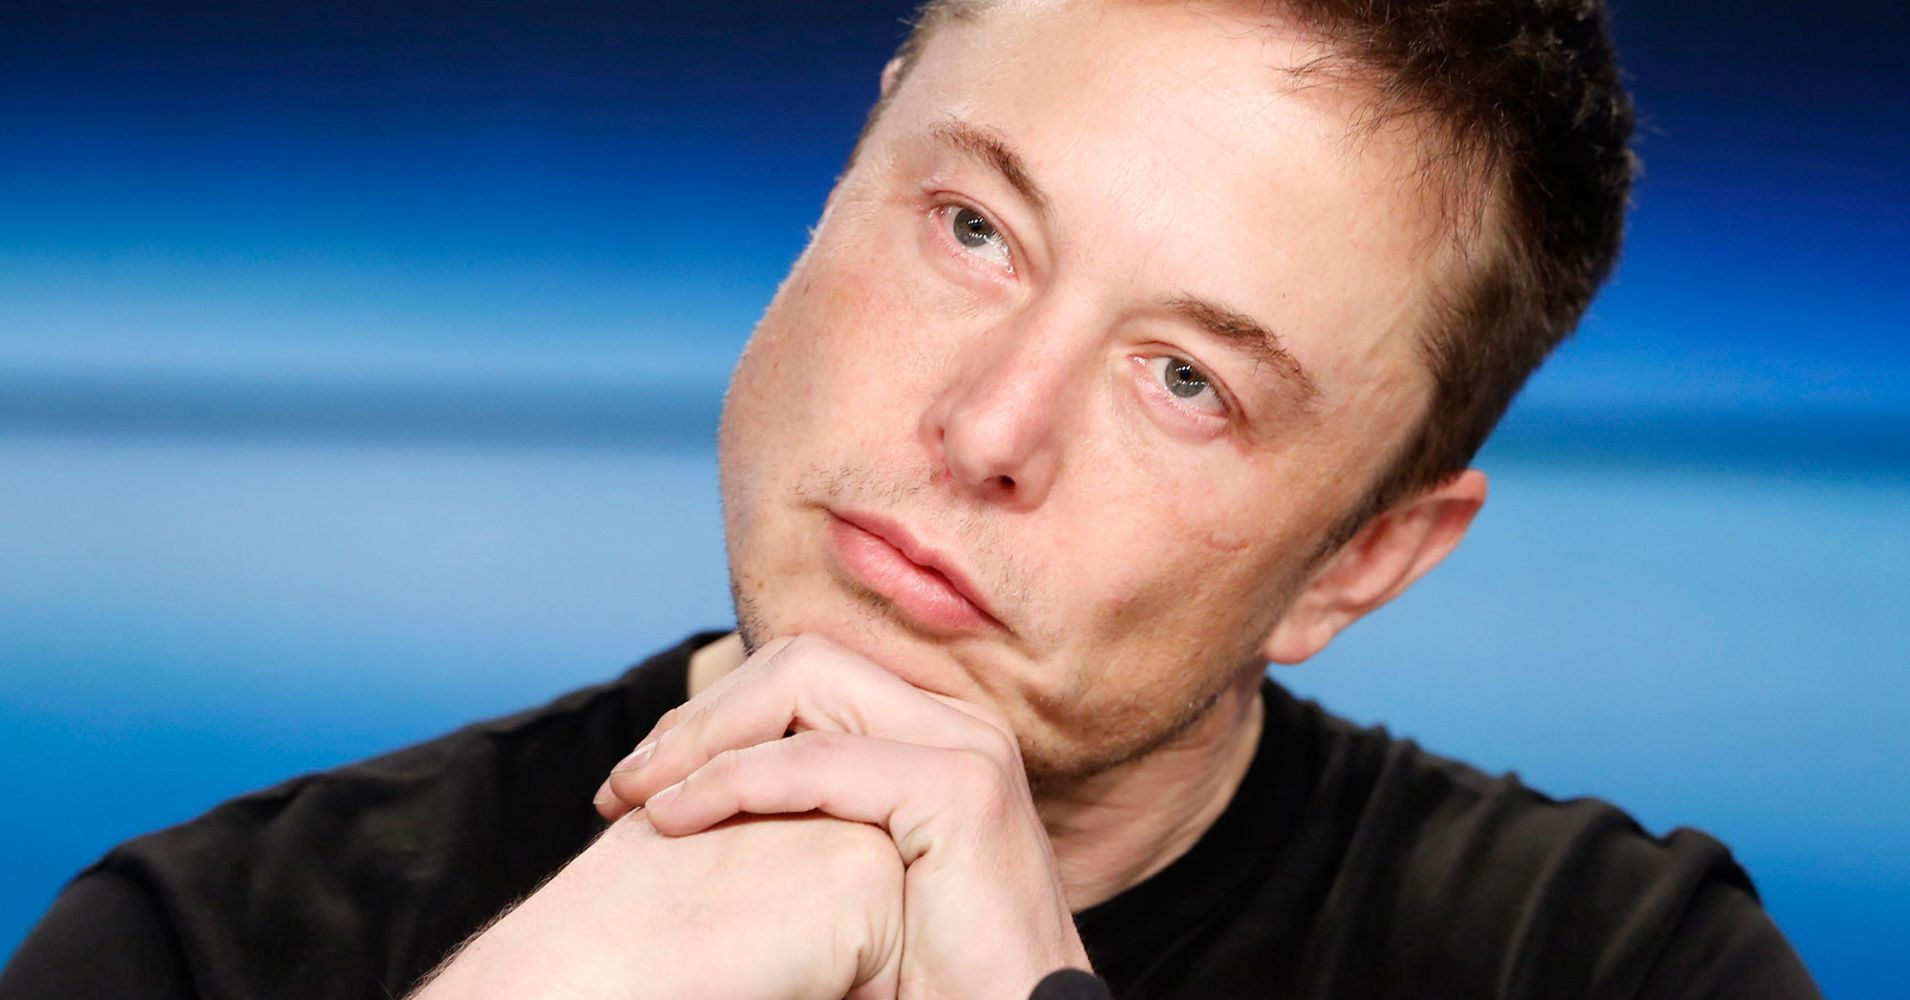 Elon Musk Must Give Some Time To Family And Friends